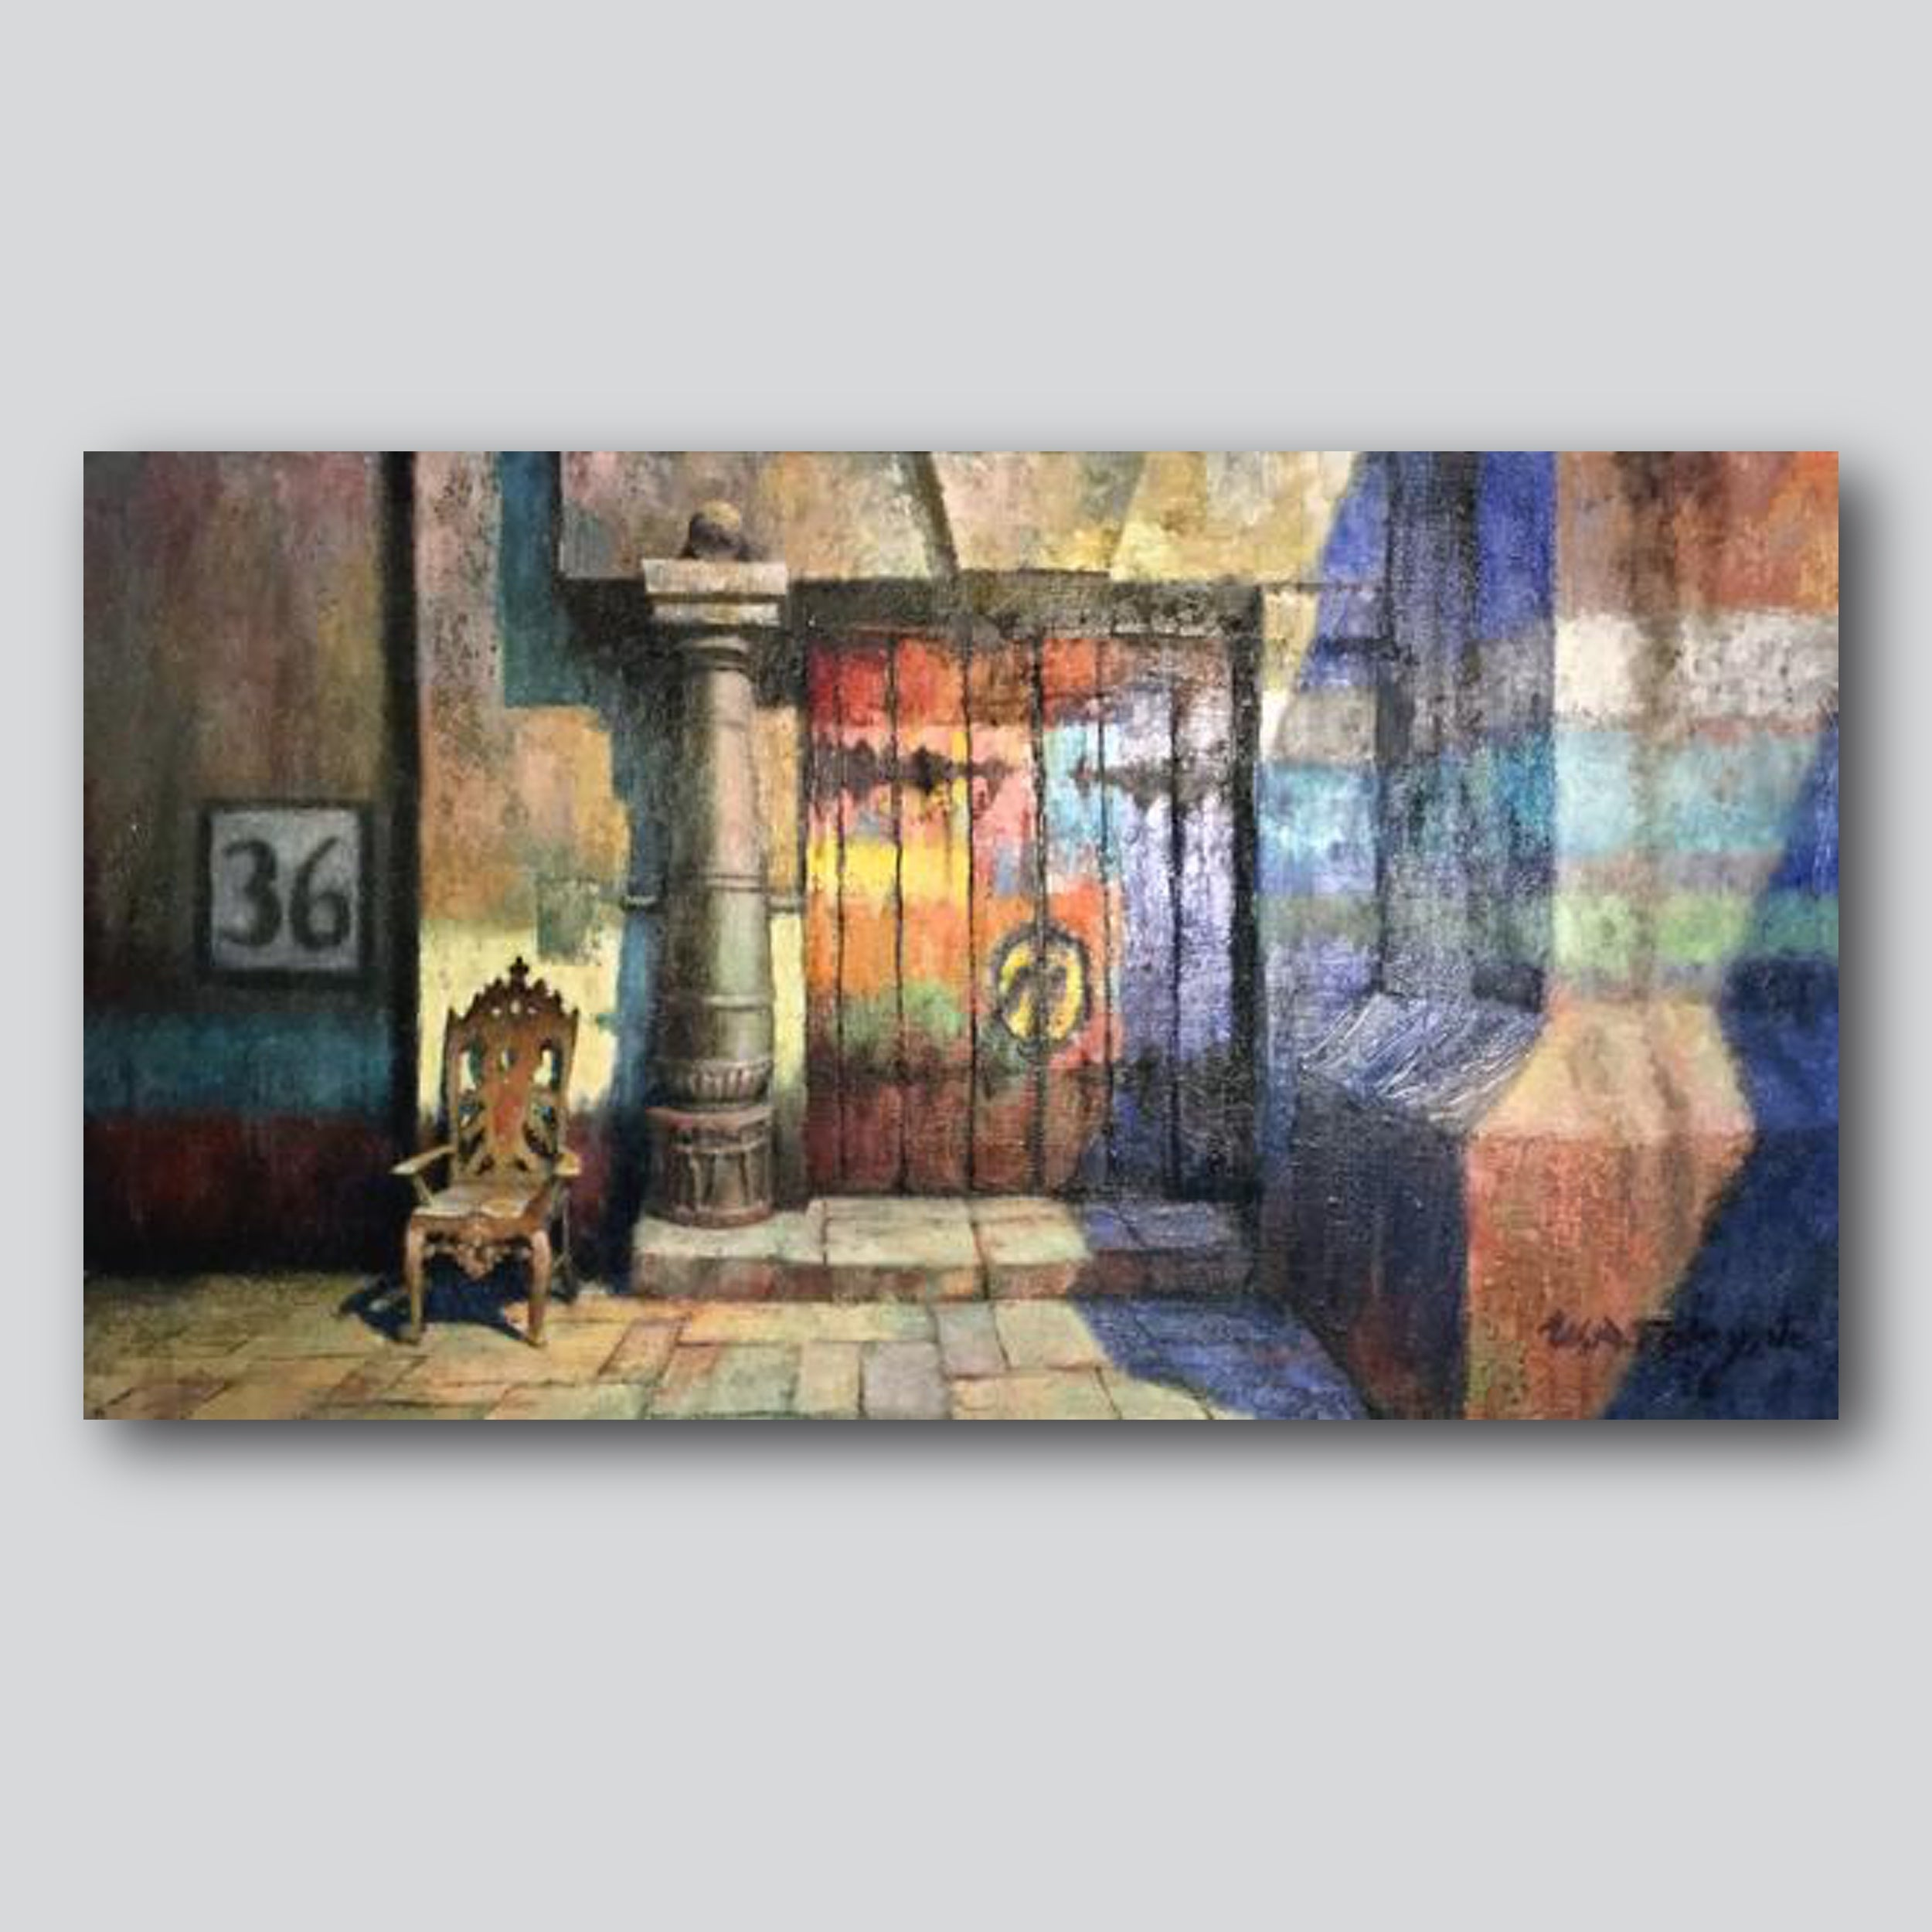 "#36 Rue De Route 45"" x 30"" Limited Edition Printed On High Gloss Metal"